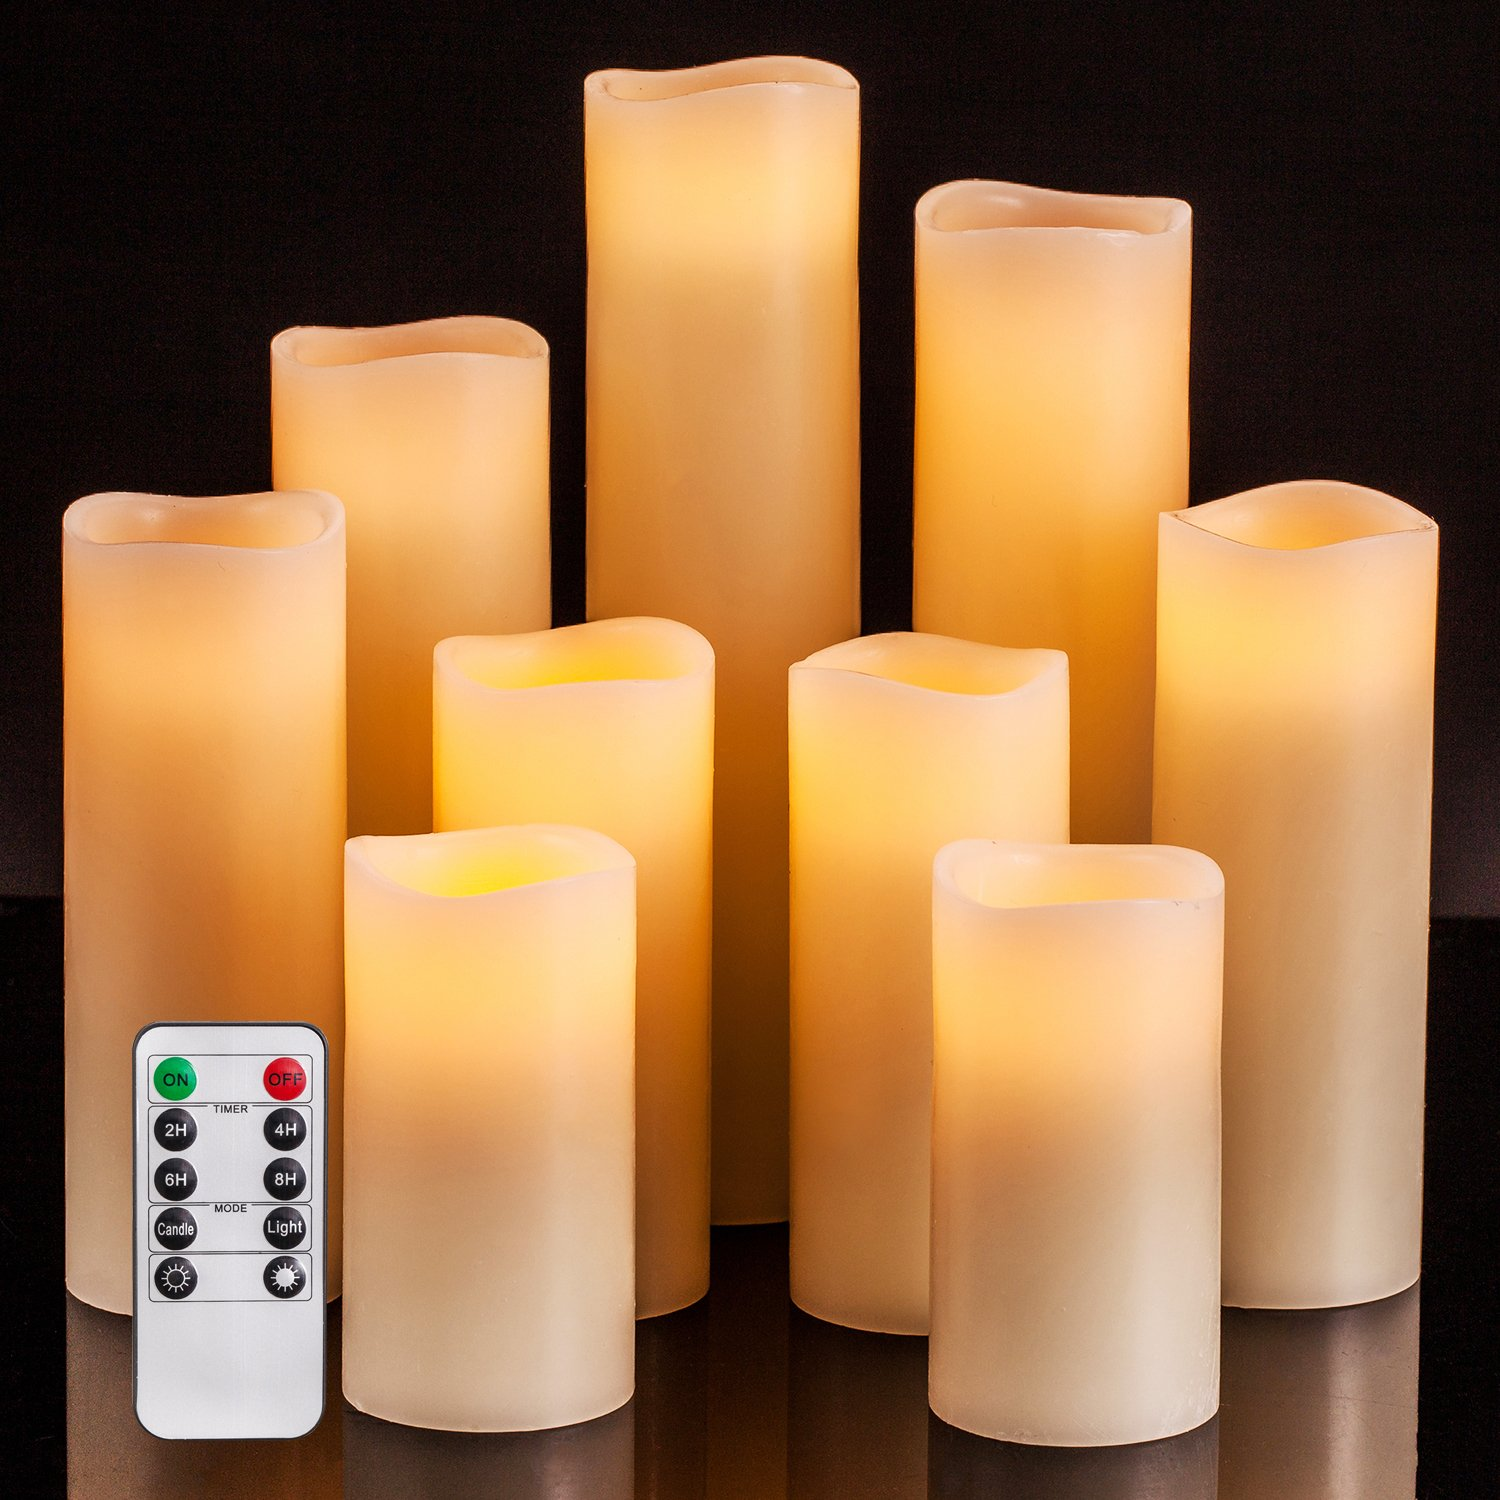 Flameless Candles Battery Operated Candles 4'' 5'' 6'' 7'' 8'' 9'' Set of 9 Ivory Real Wax Pillar LED Candles with 10-key Remote and Cycling 24 Hours Timer by Good Electonic